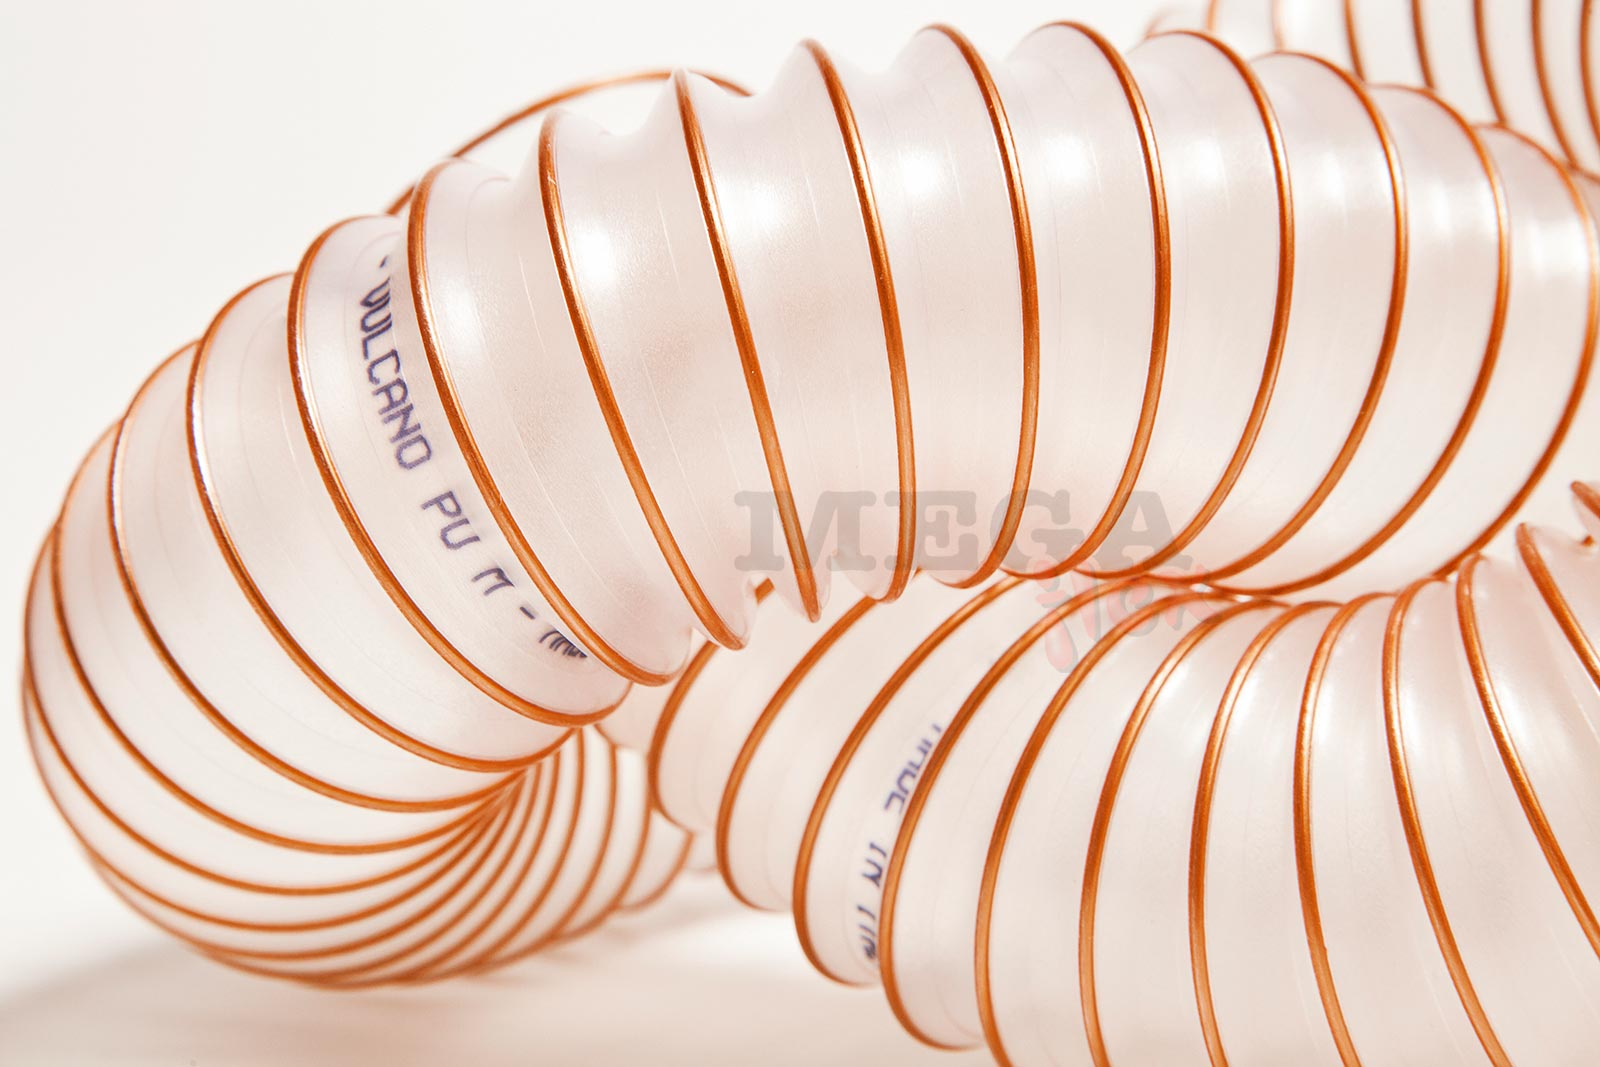 Vulcano PU M FR - Clear Ester Polyurethane Ducting Reinforced with PU-coated Coppered Steel Wire Helix (Medium Duty)